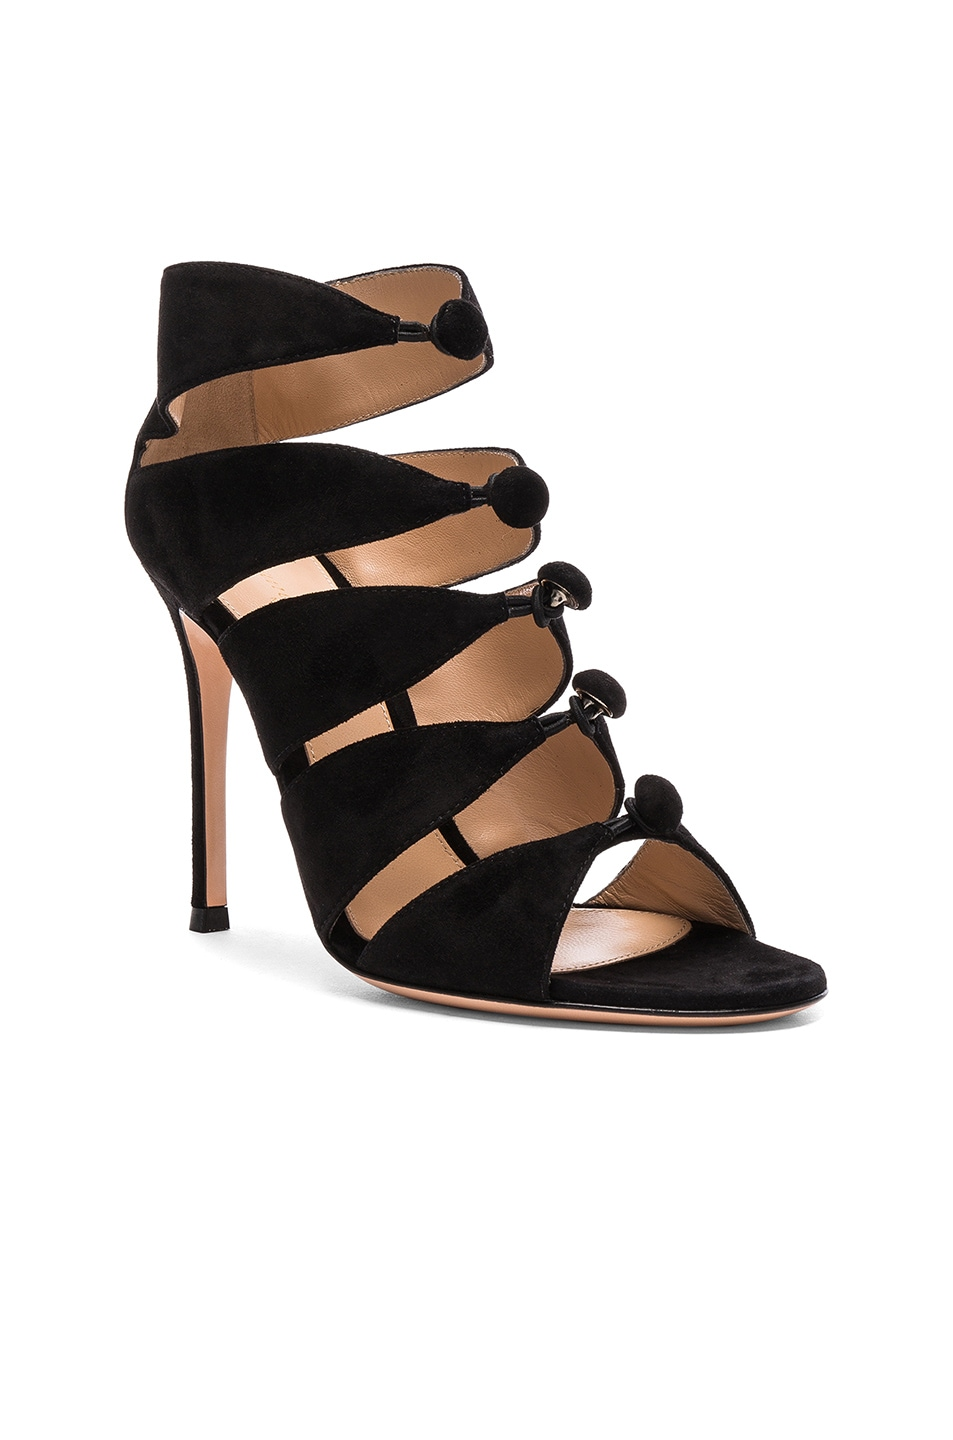 Image 2 of Gianvito Rossi Suede Knot Heels in Black